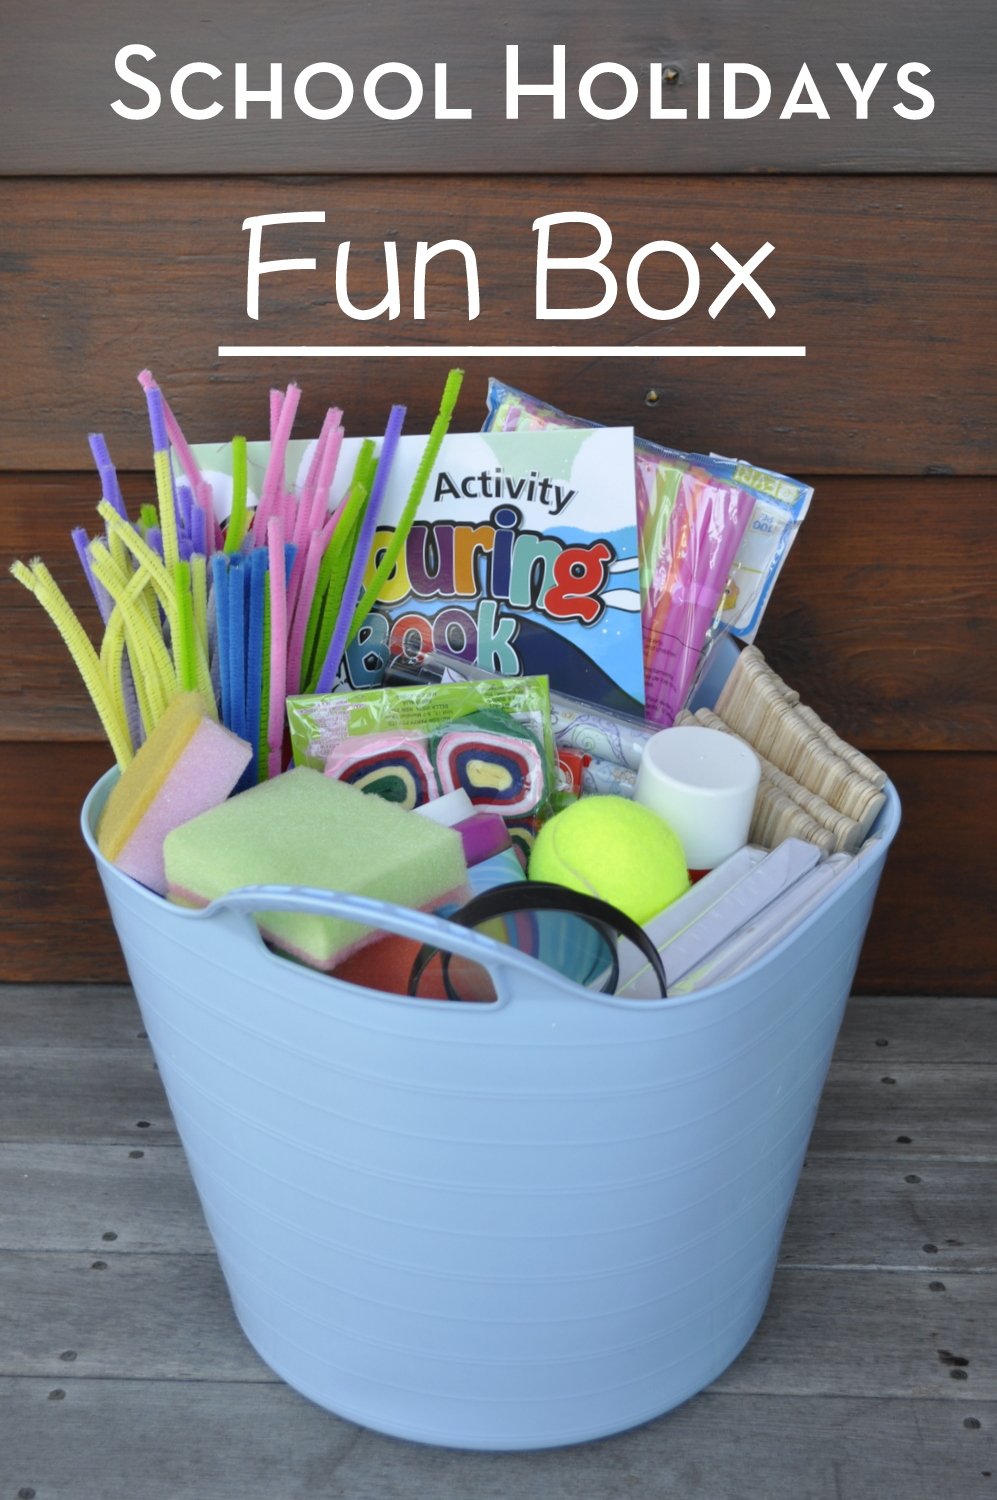 Make a school holiday fun box to keep the kids occupied. See what is in it here and over 80 activity ideas